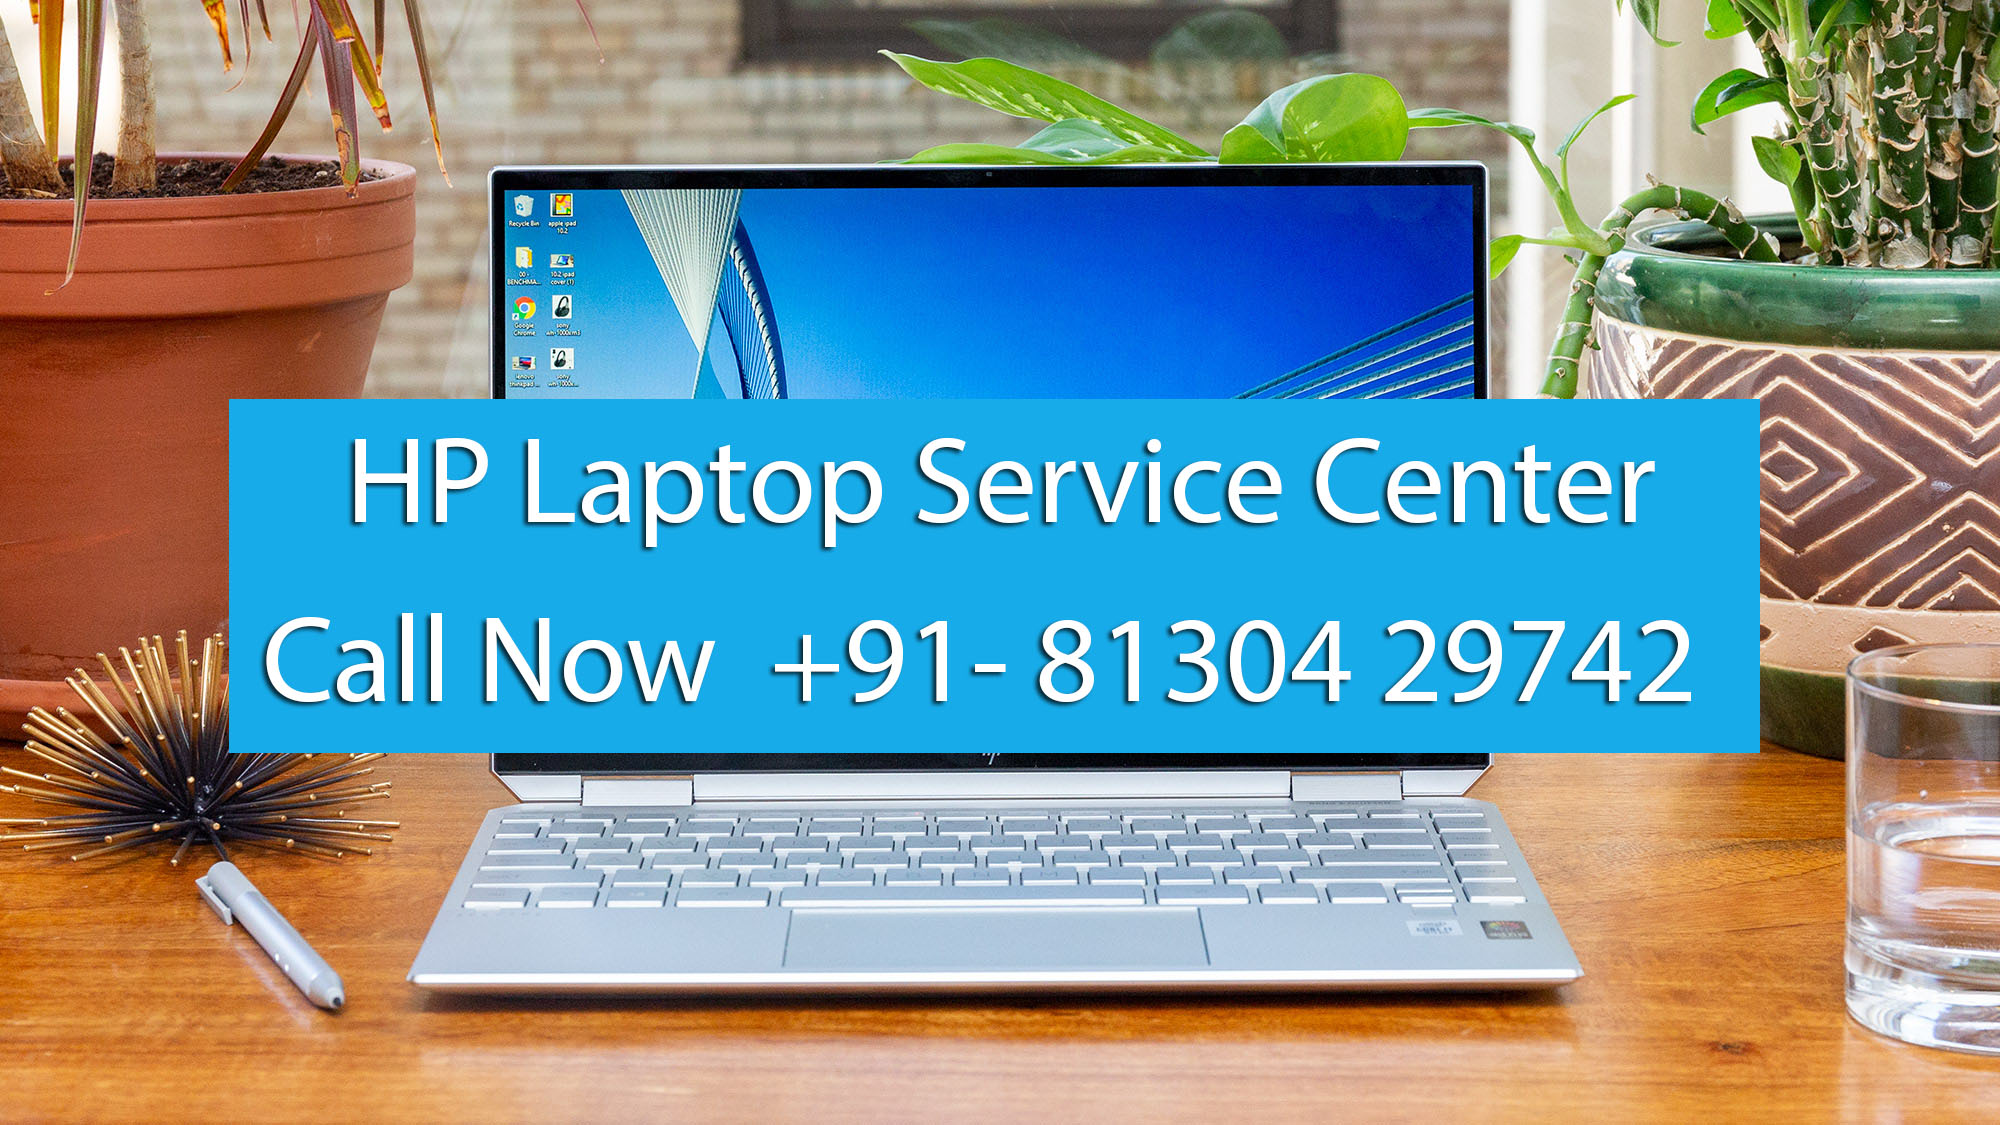 Hp service center in Civil Lines